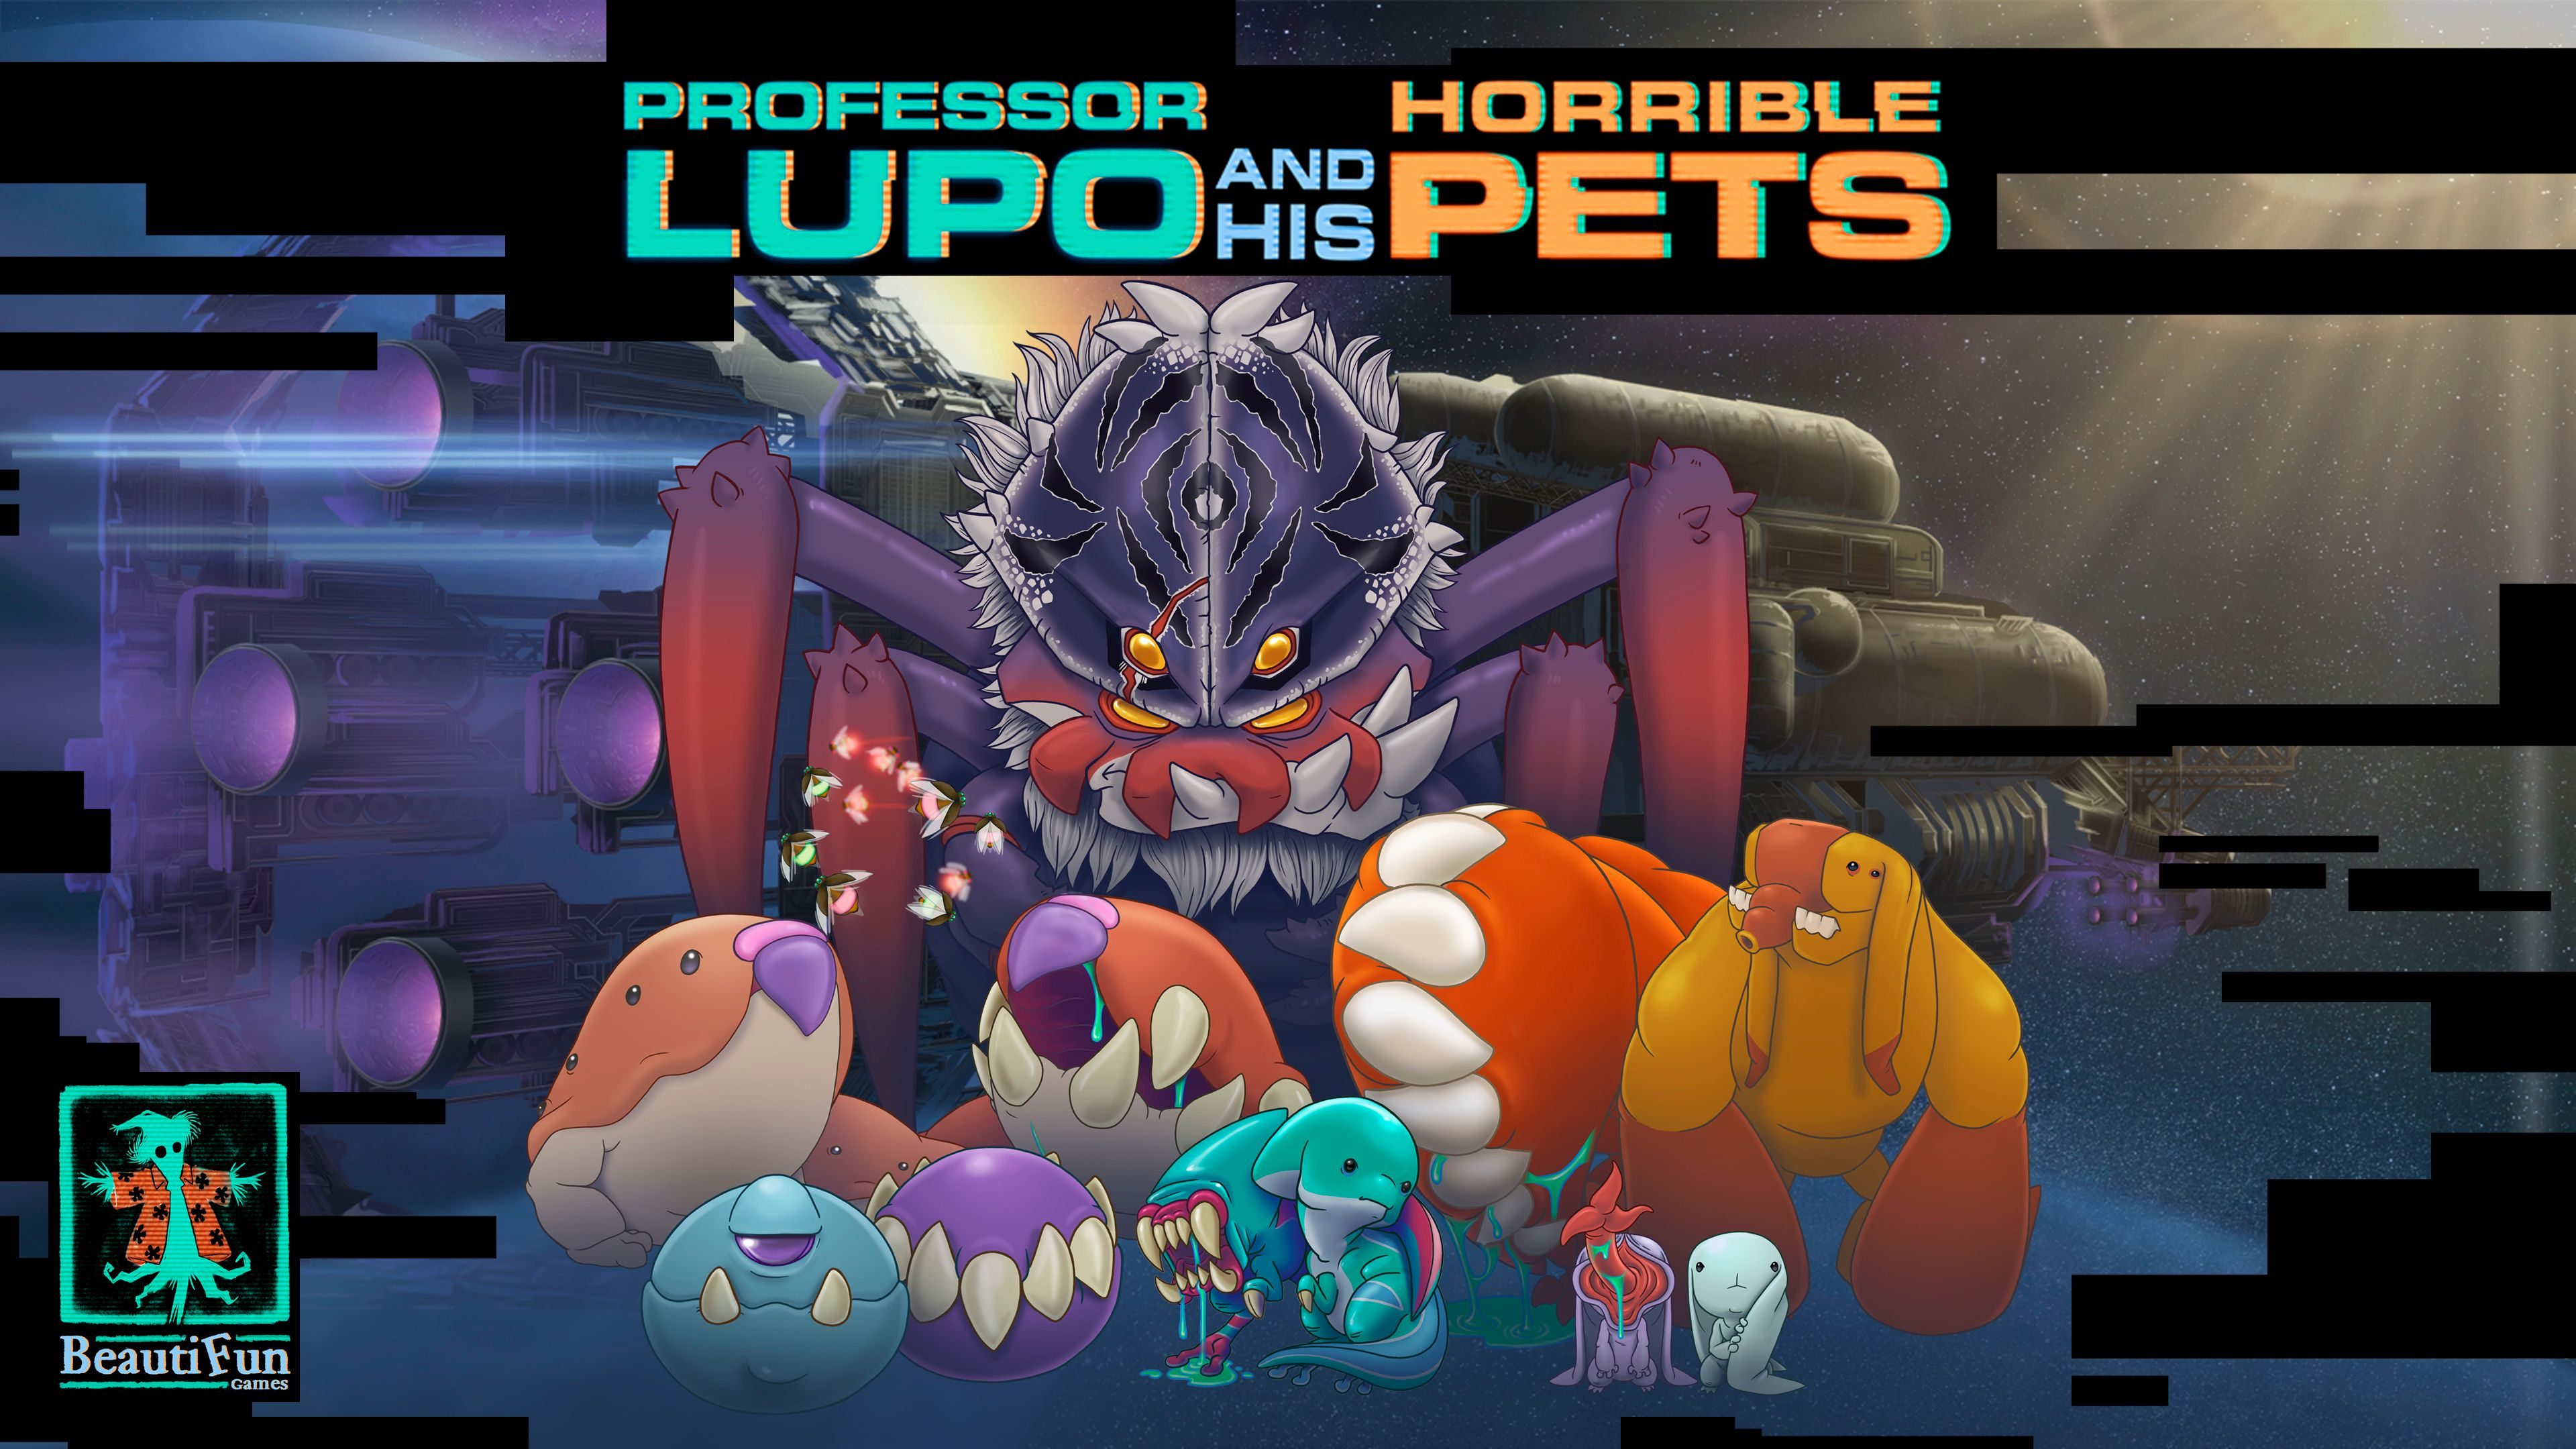 Professor-Lupo-and-his-Horrible-Pets.jpg